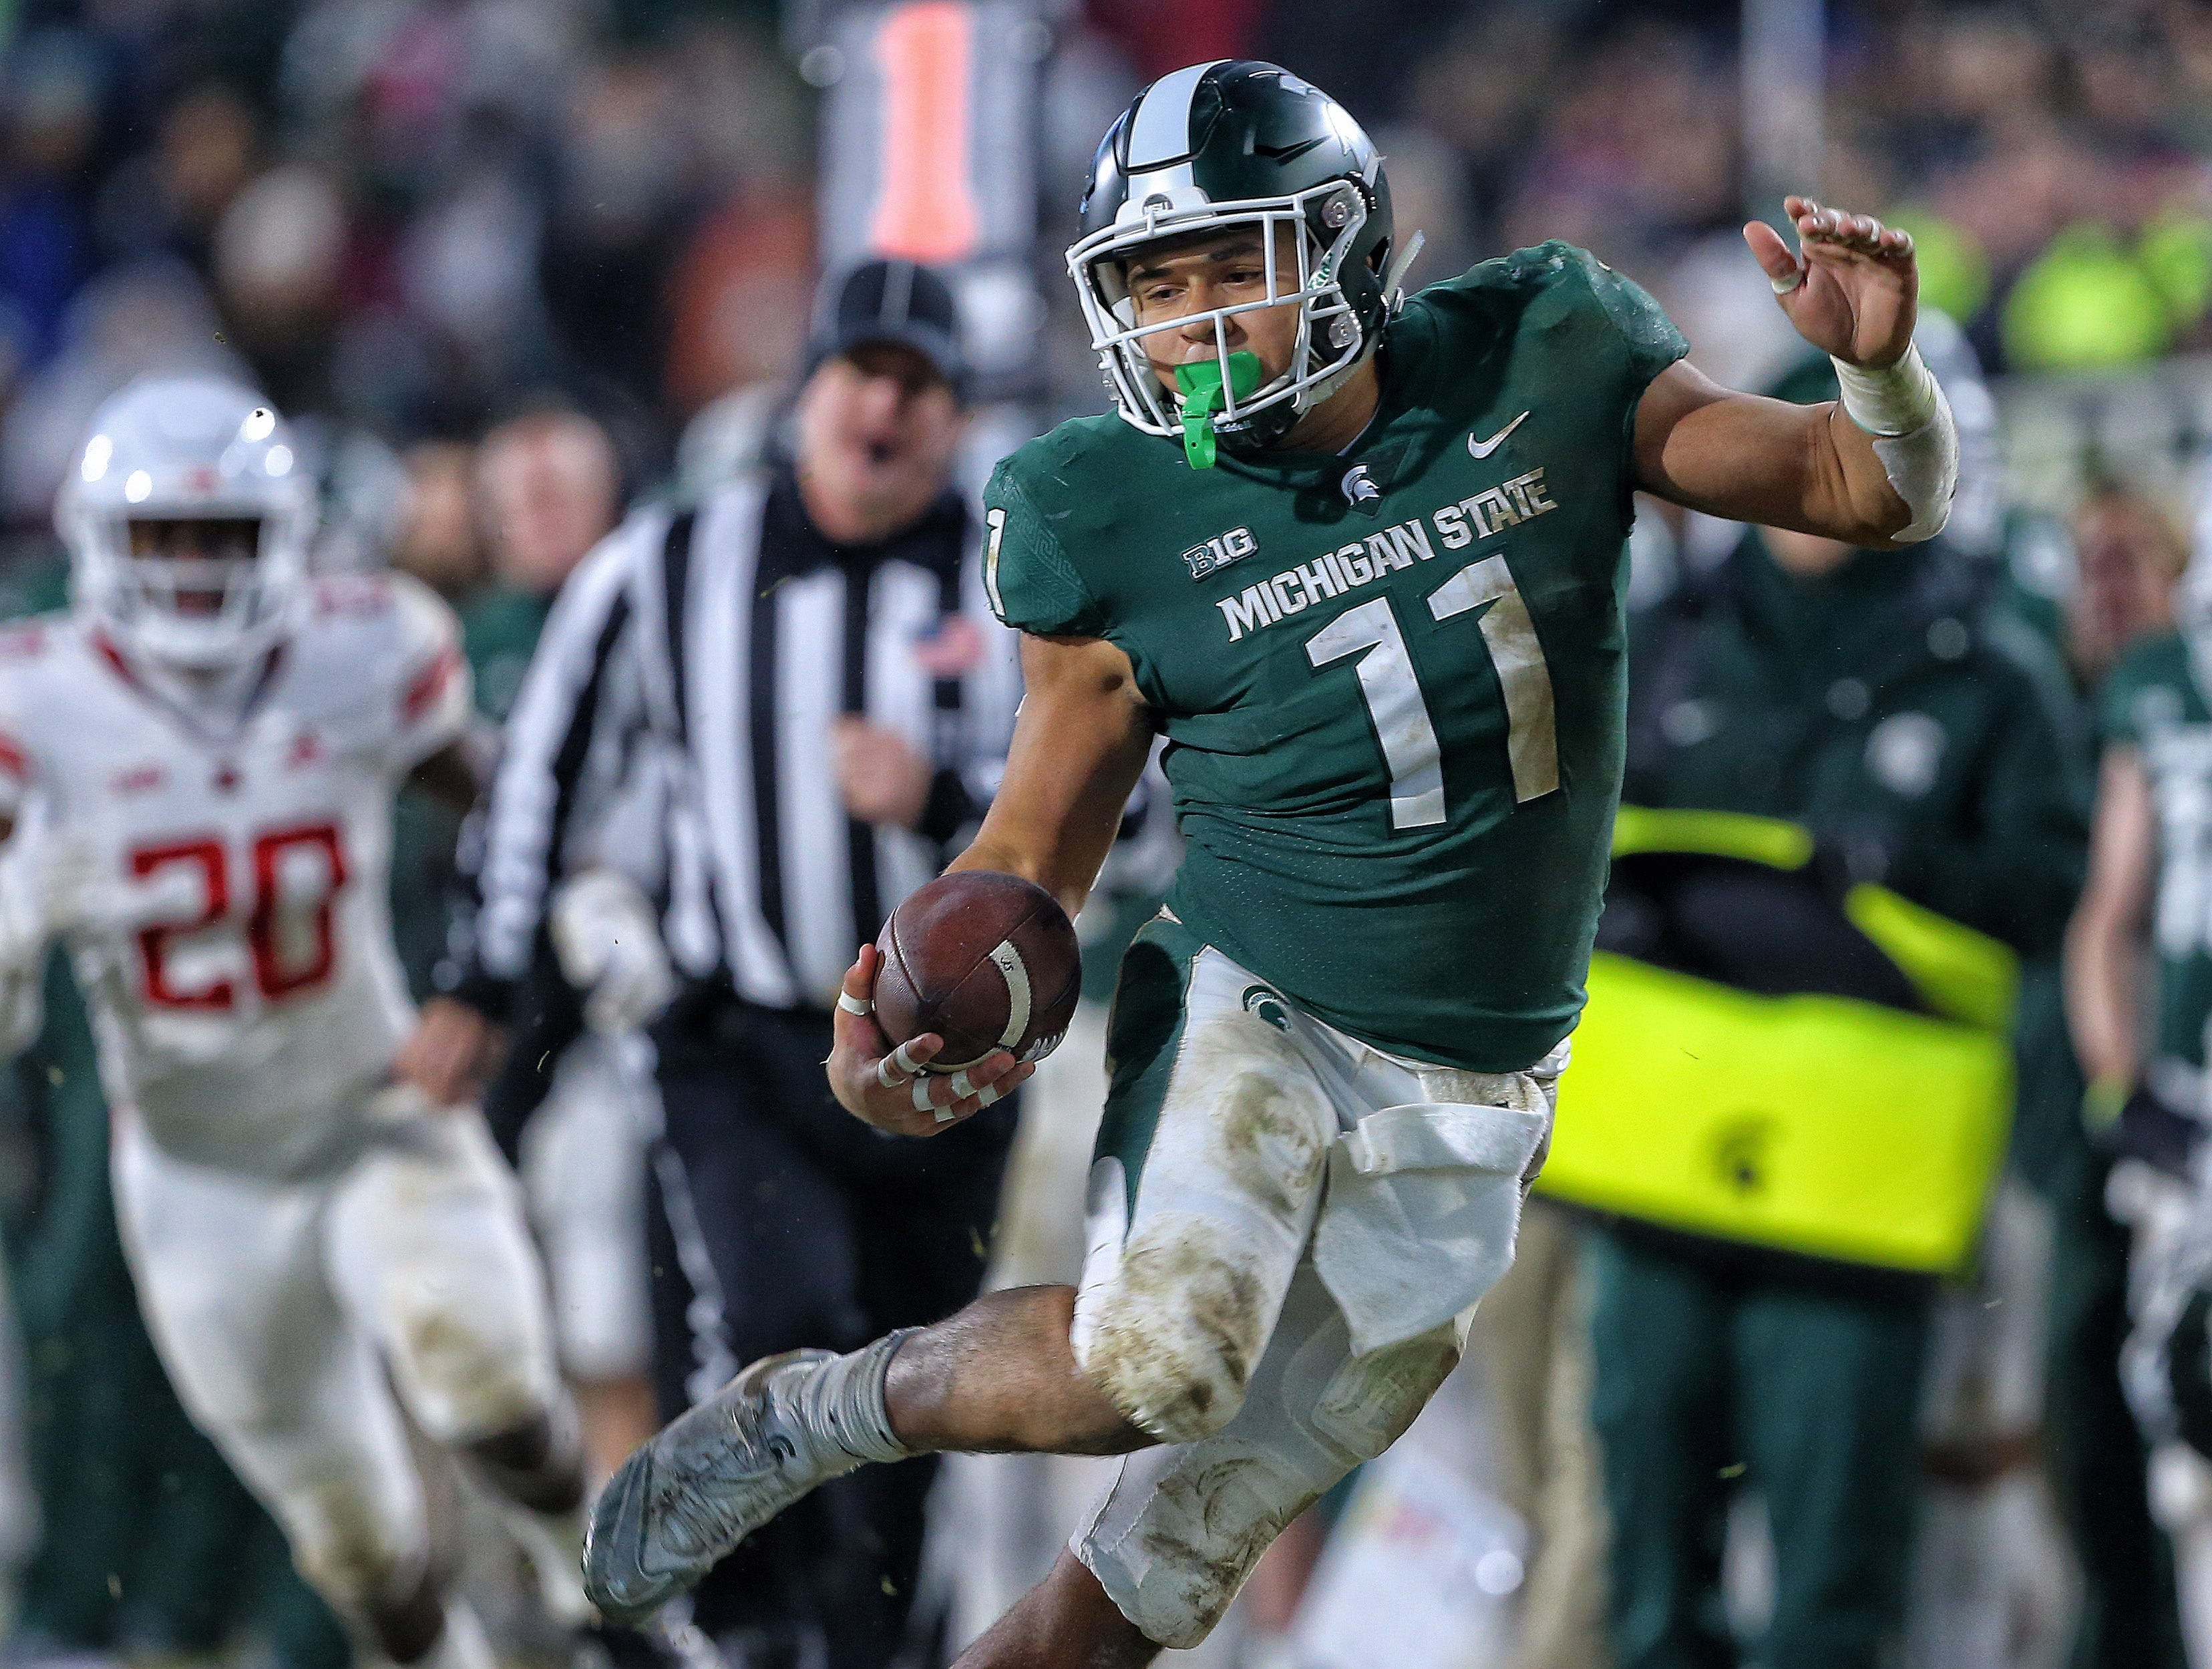 Nov 24, 2018; East Lansing, MI, USA; Michigan State Spartans running back Connor Heyward (11) runs the ball during the first half against the Rutgers Scarlet Knights at Spartan Stadium. Mandatory Credit: Mike Carter-USA TODAY Sports